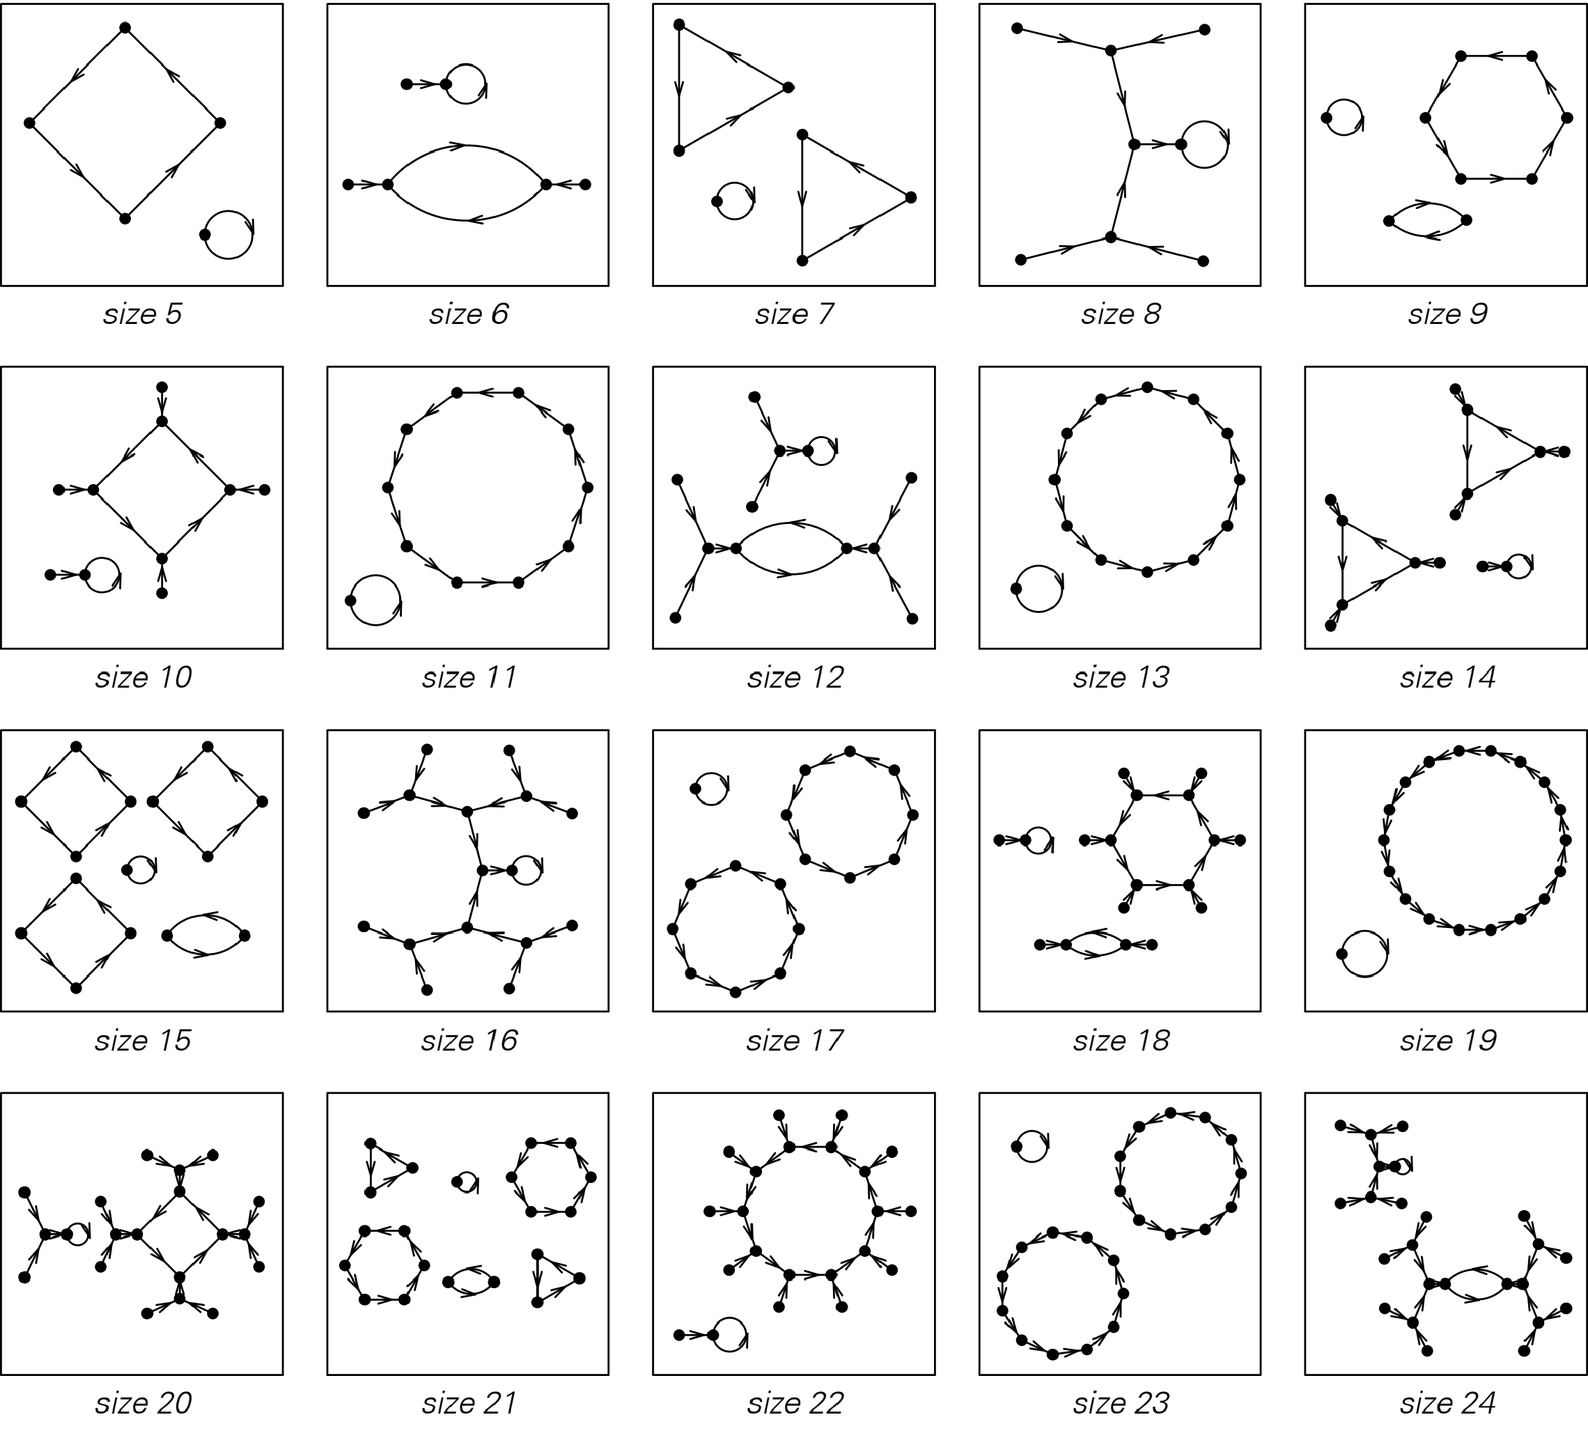 [State networks for] systems of limited size image 2